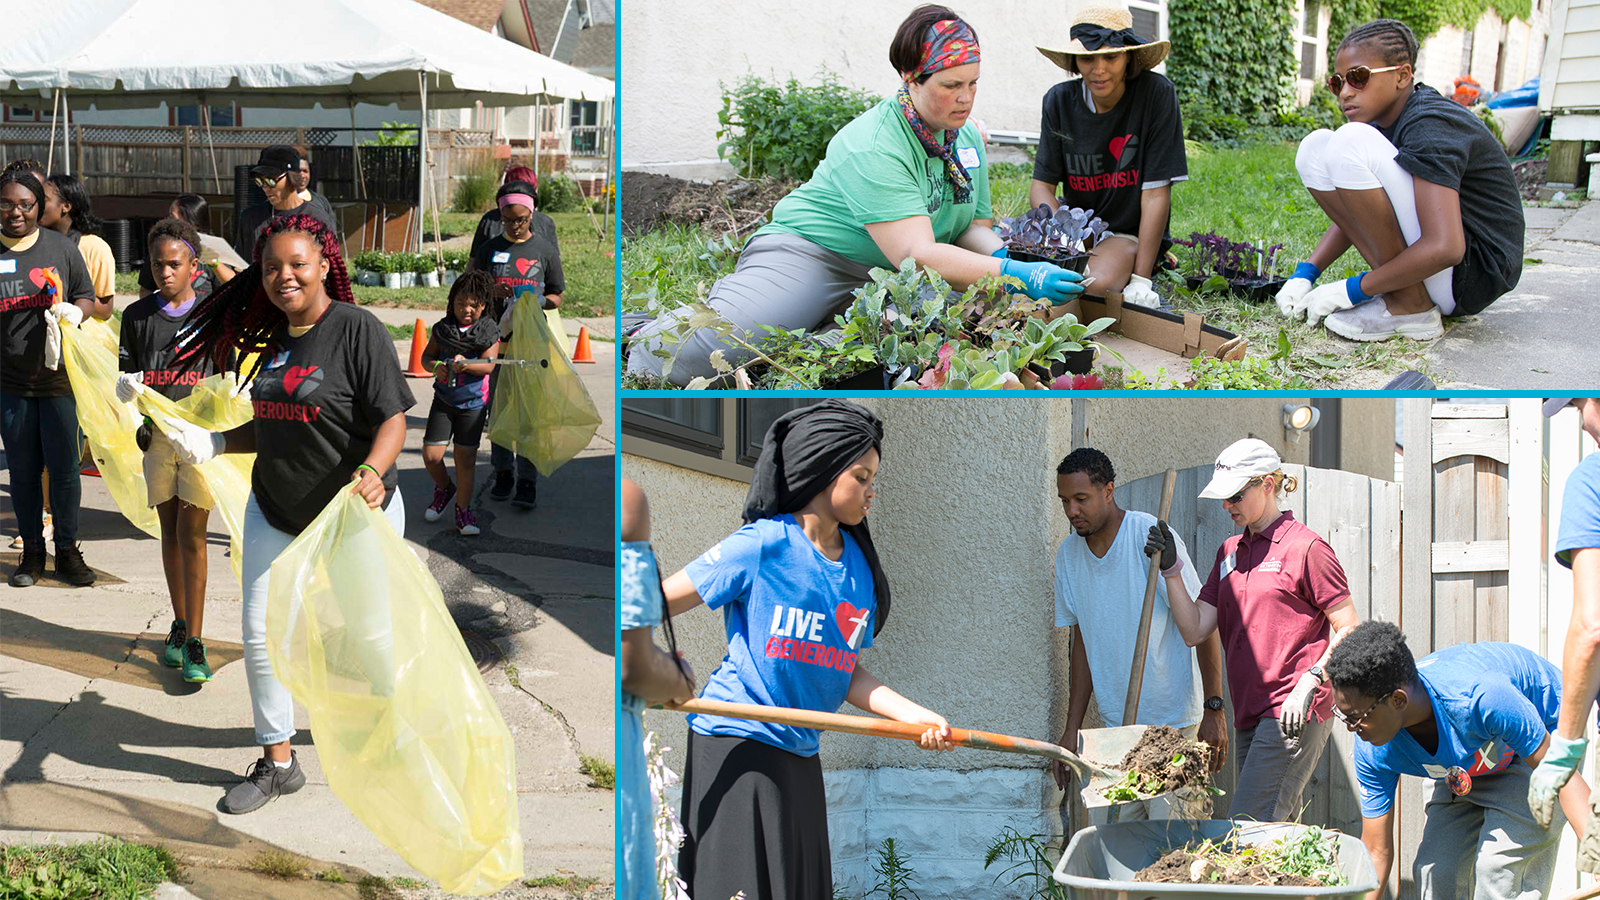 Neighborhood Revitalization event photo collage